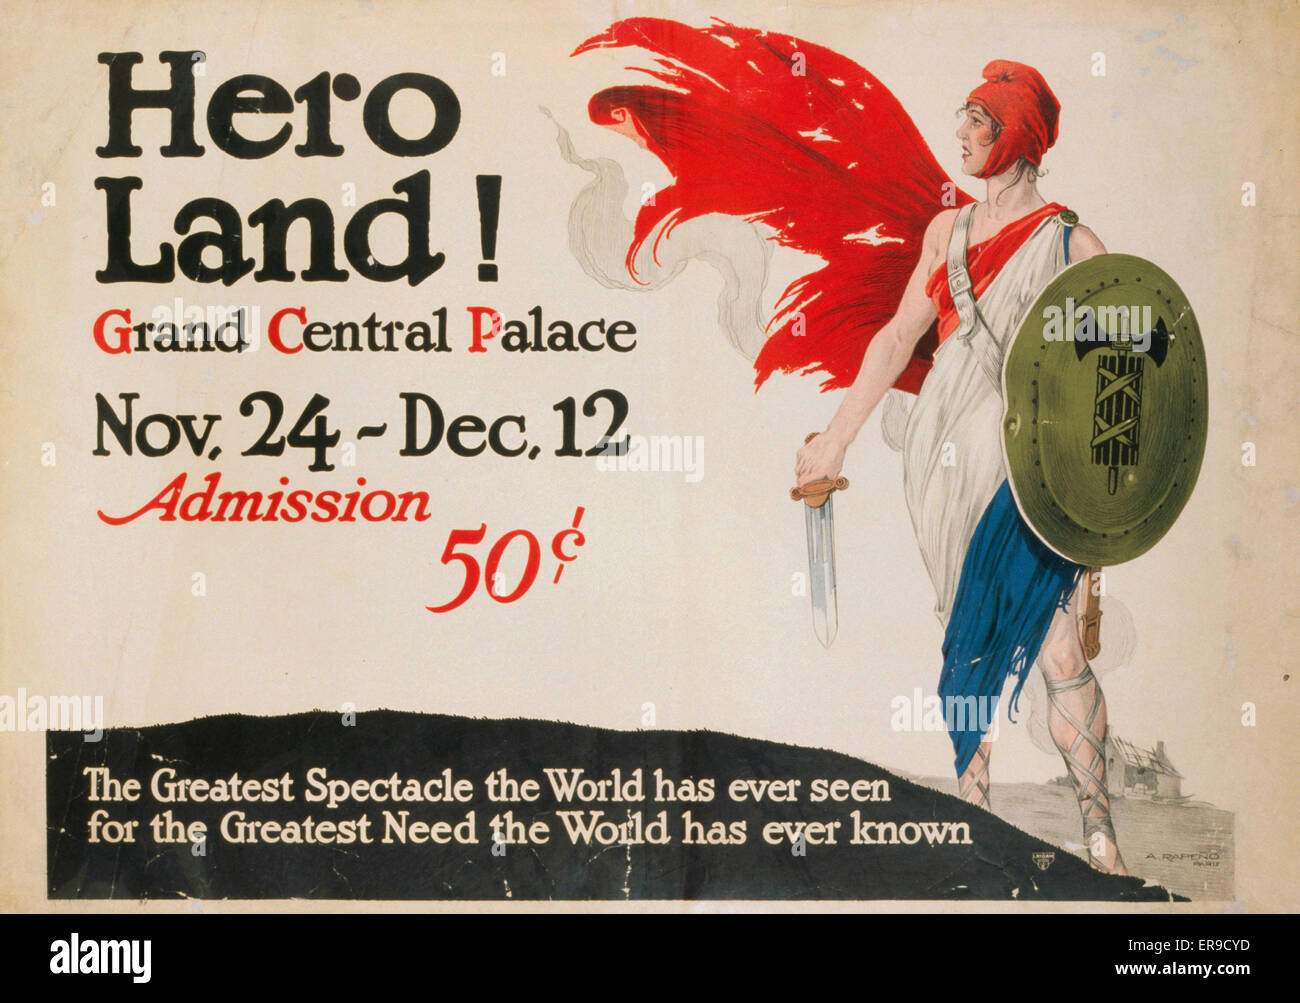 Hero land! Grand Central Palace, Nov. 24 - Dec. 12. Admission 50 cents. Translation of title: Marianne wearing a - Stock Image